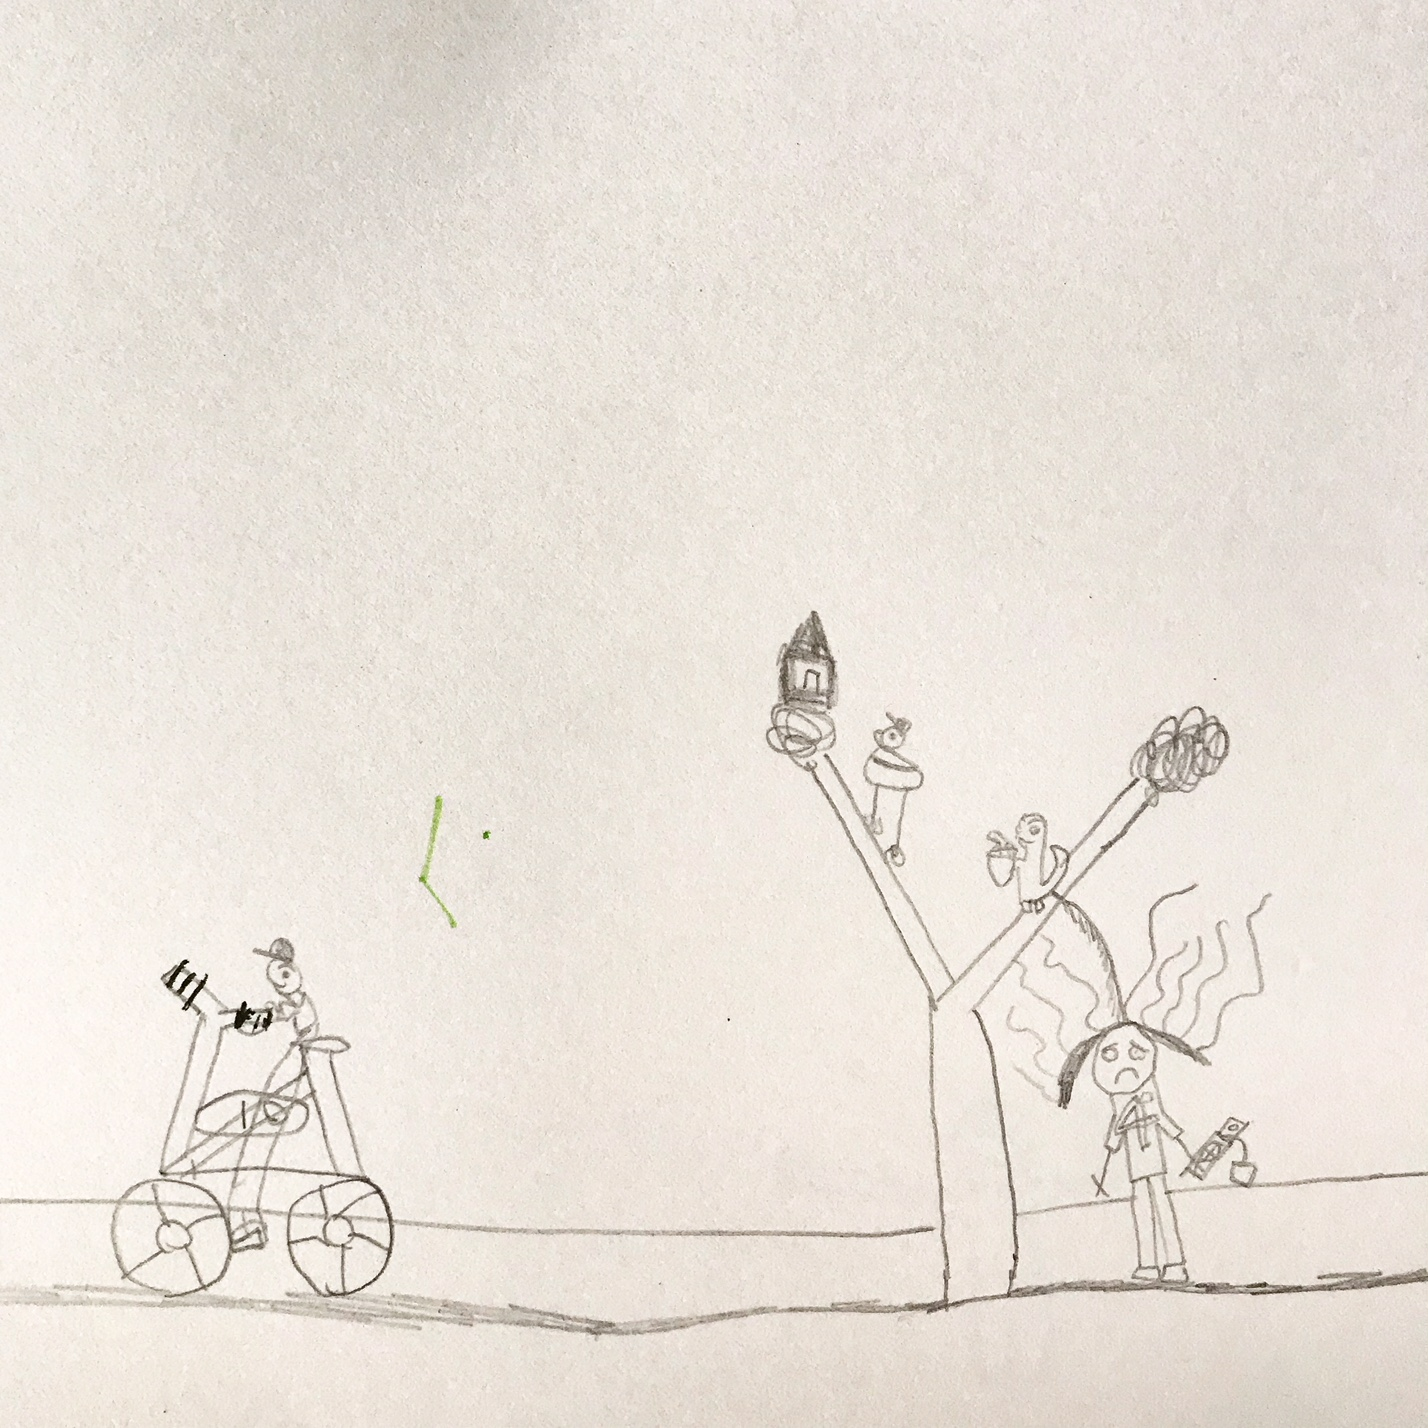 Boy riding a bike and laughing at a girl who got peed by a squirrel. -Drawing by Manolo, 5 yo.